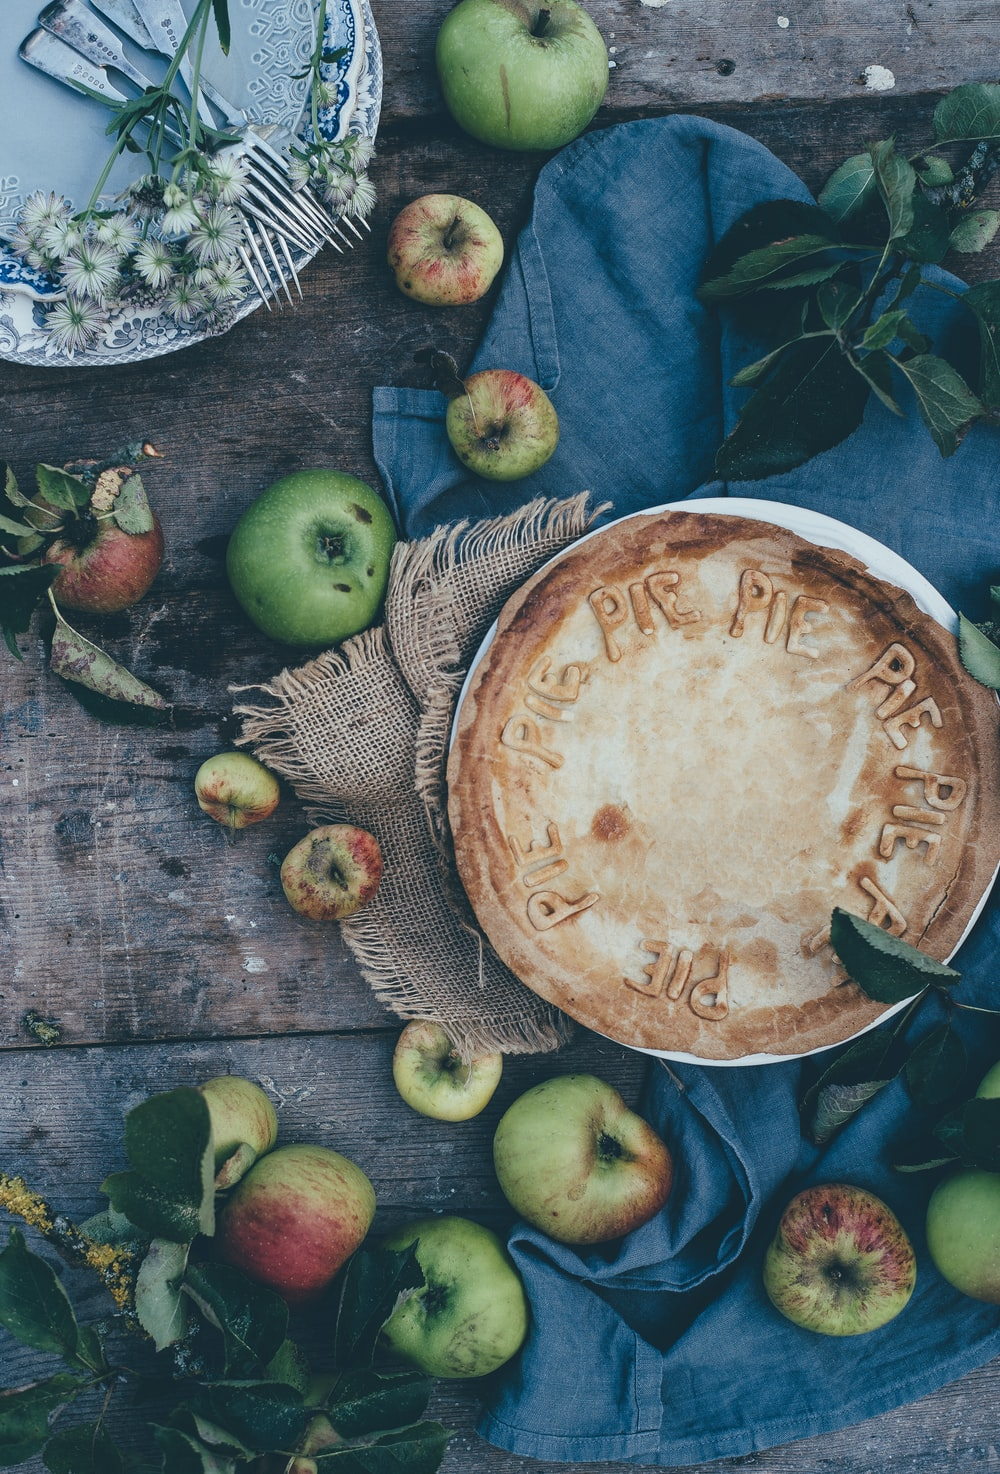 baked pie beside green apples